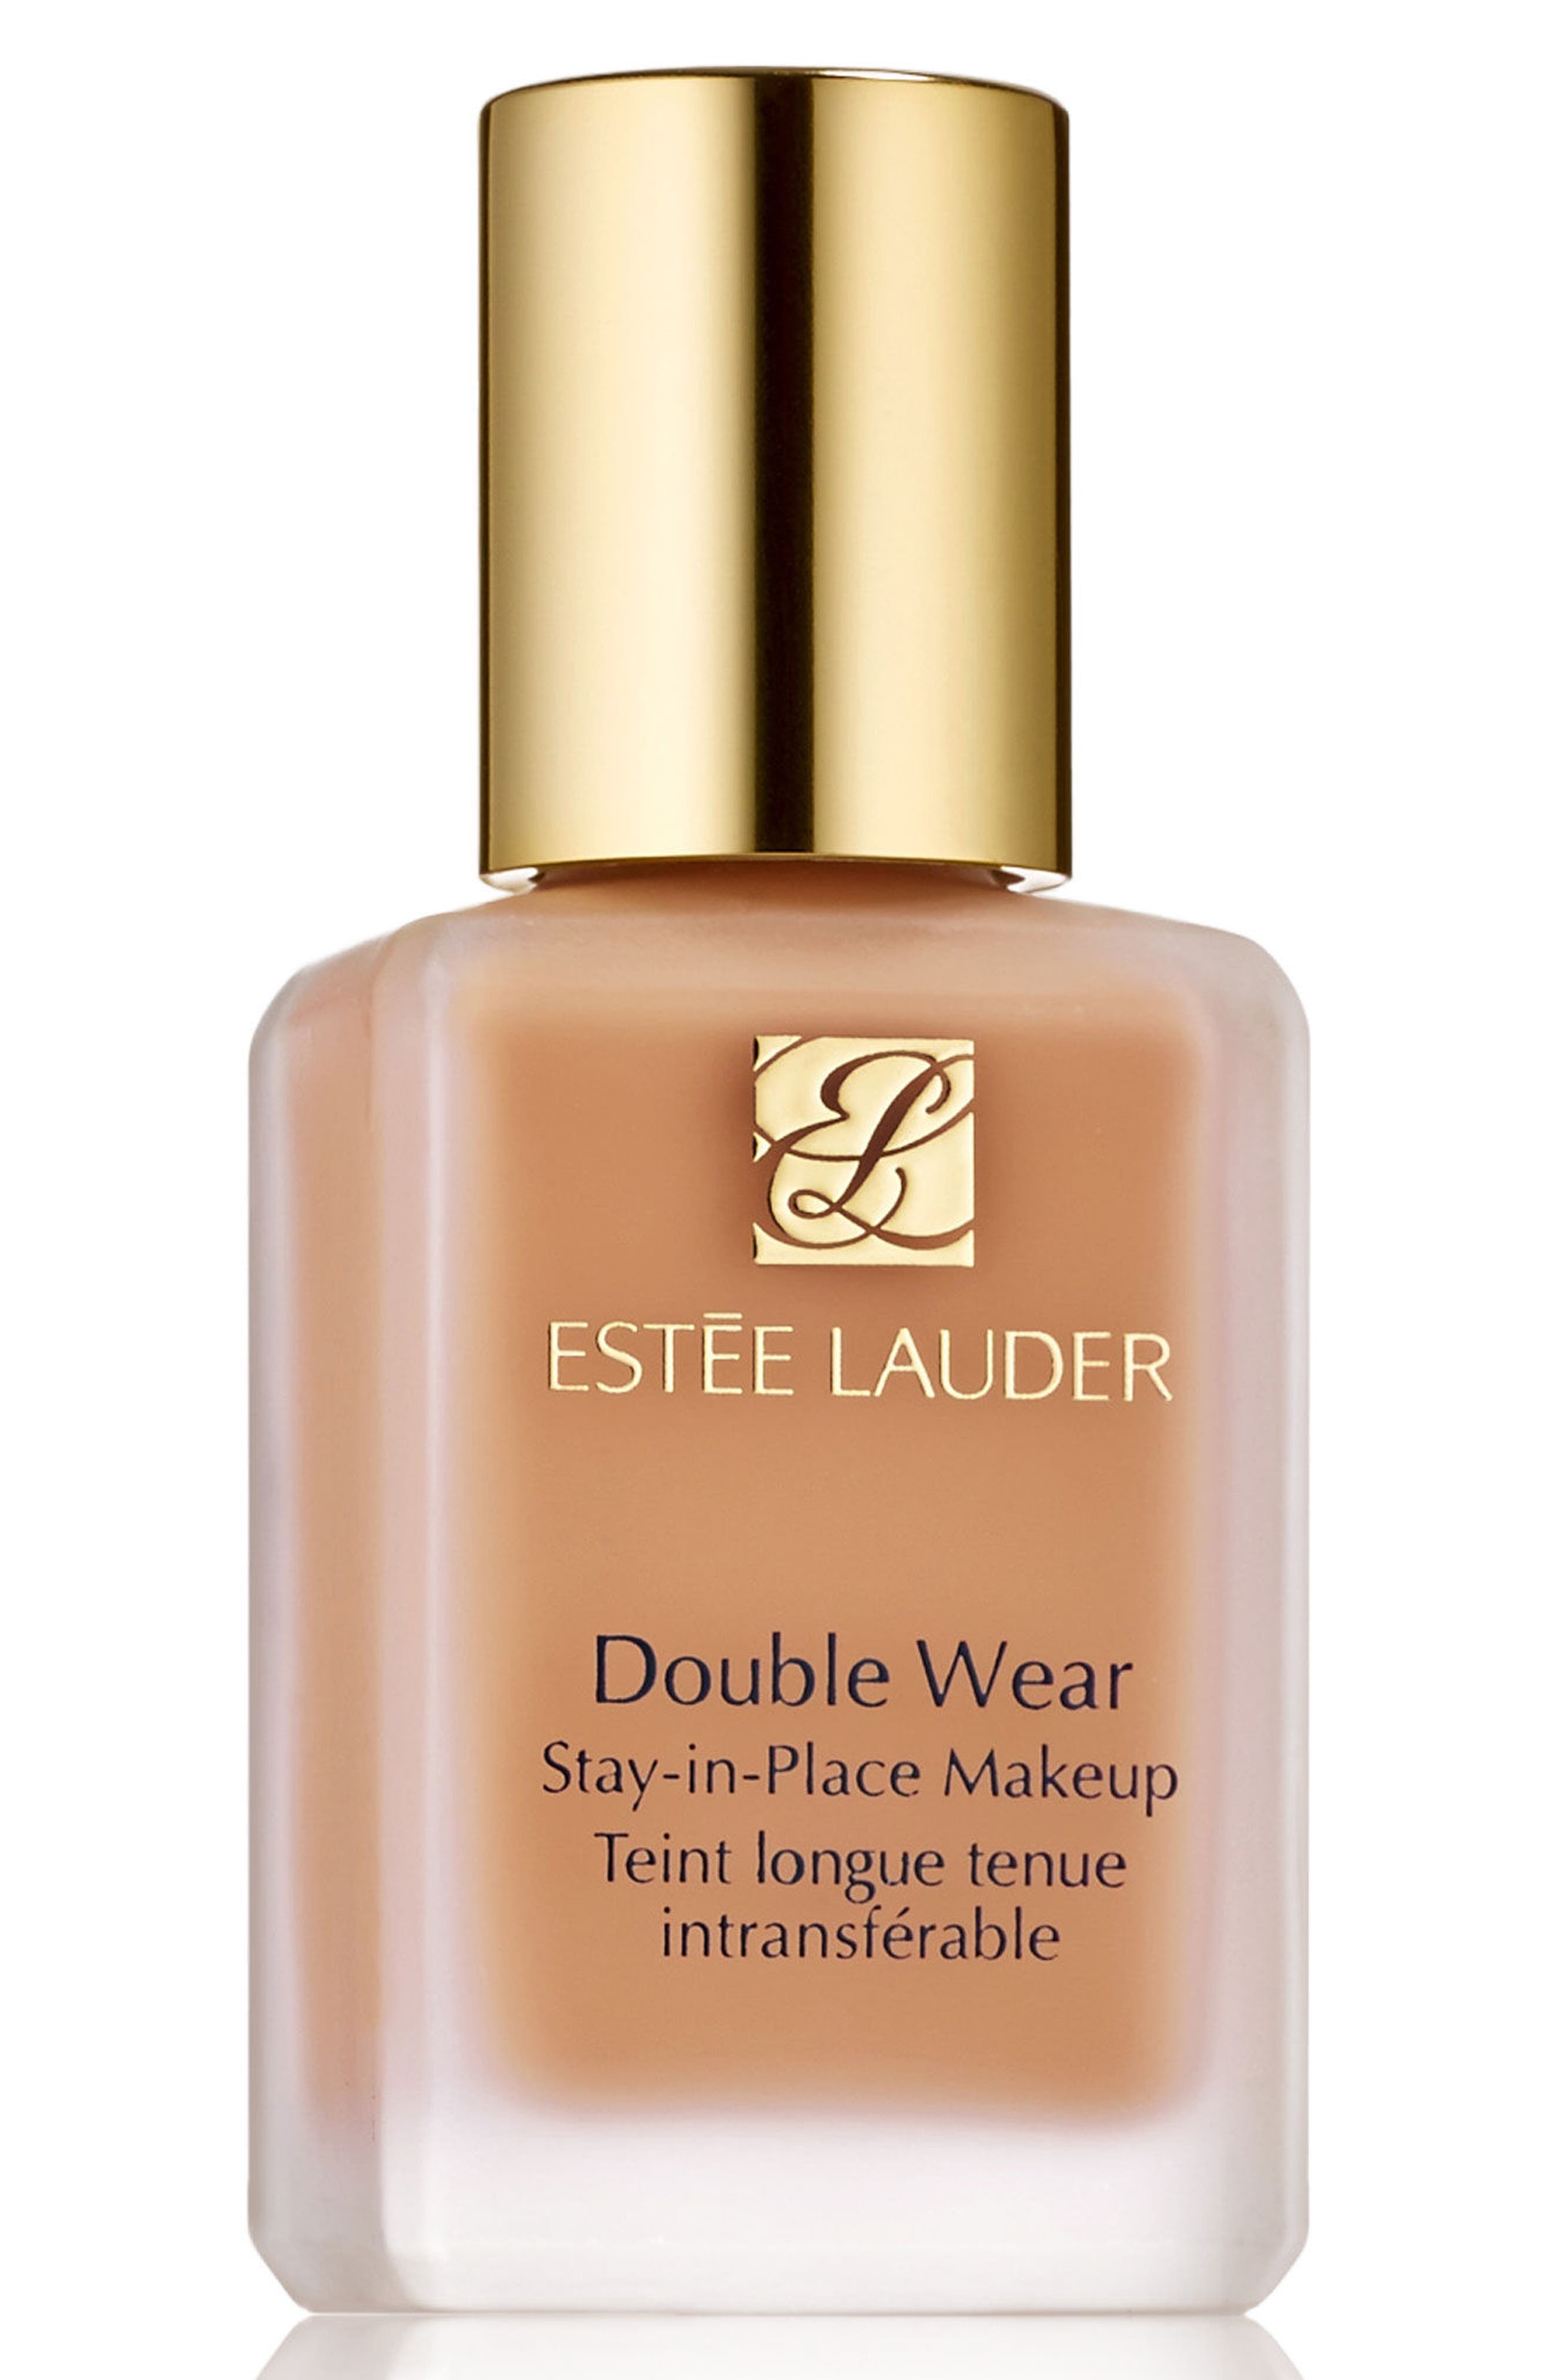 Estee Lauder Double Wear Stay-In-Place Liquid Makeup - 2C4 Ivory Rose